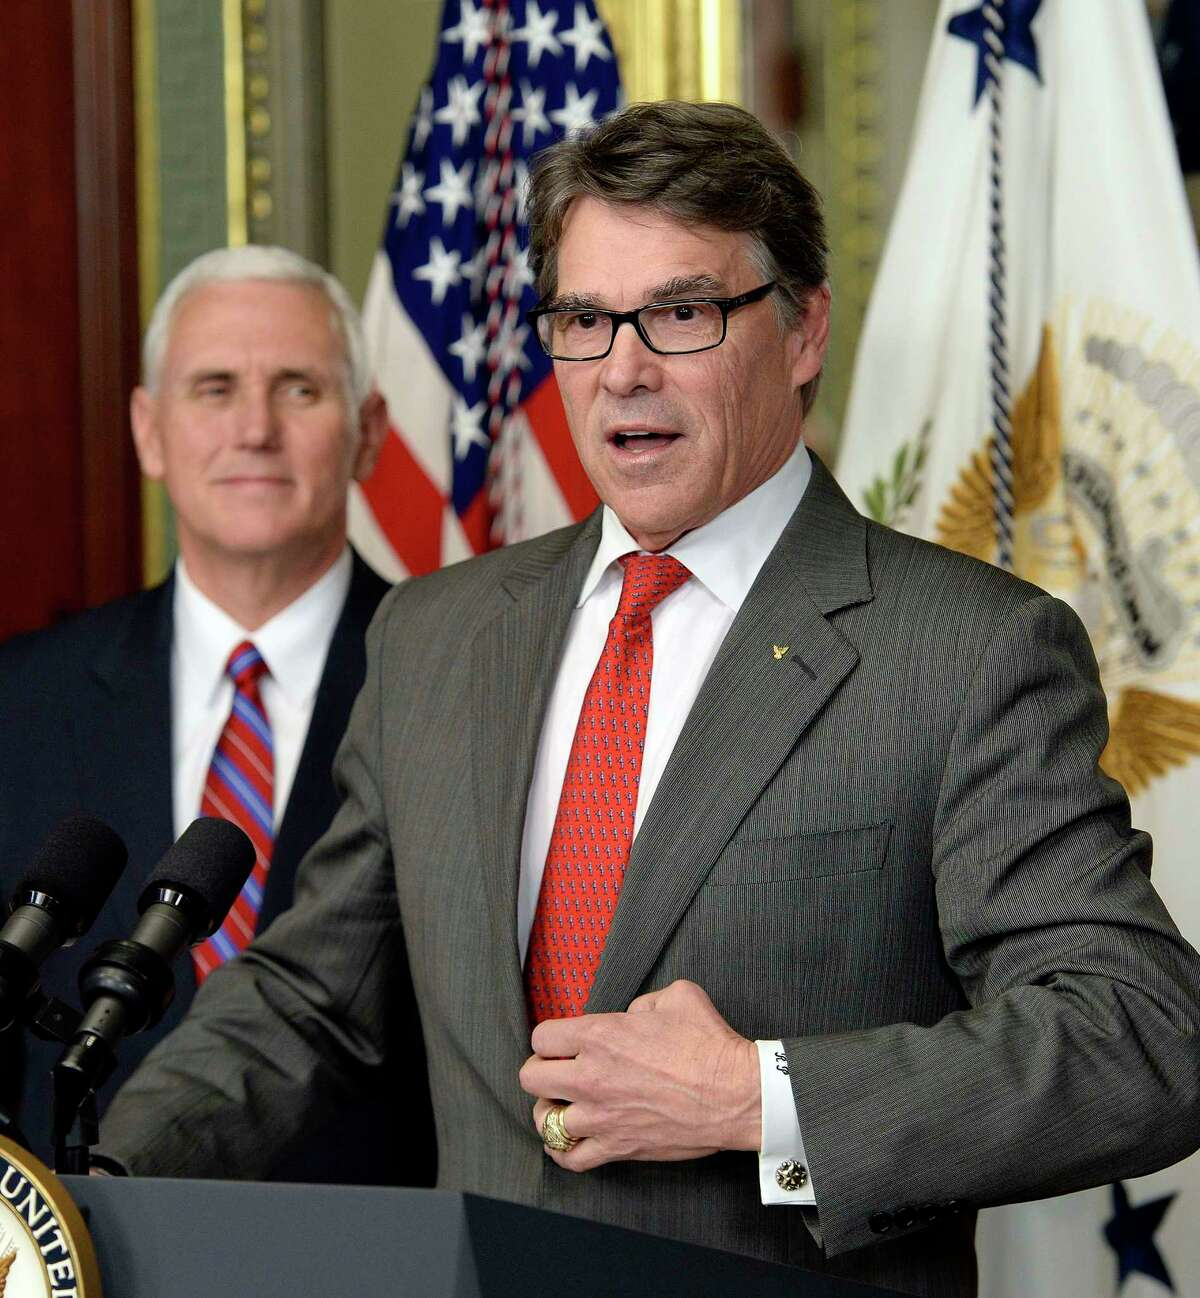 Rick Perry speaks after being sworn in as secretary of energy on Thursday, March 2, 2017 in Washington, D.C. (Olivier Douliery/Abaca Press/TNS)